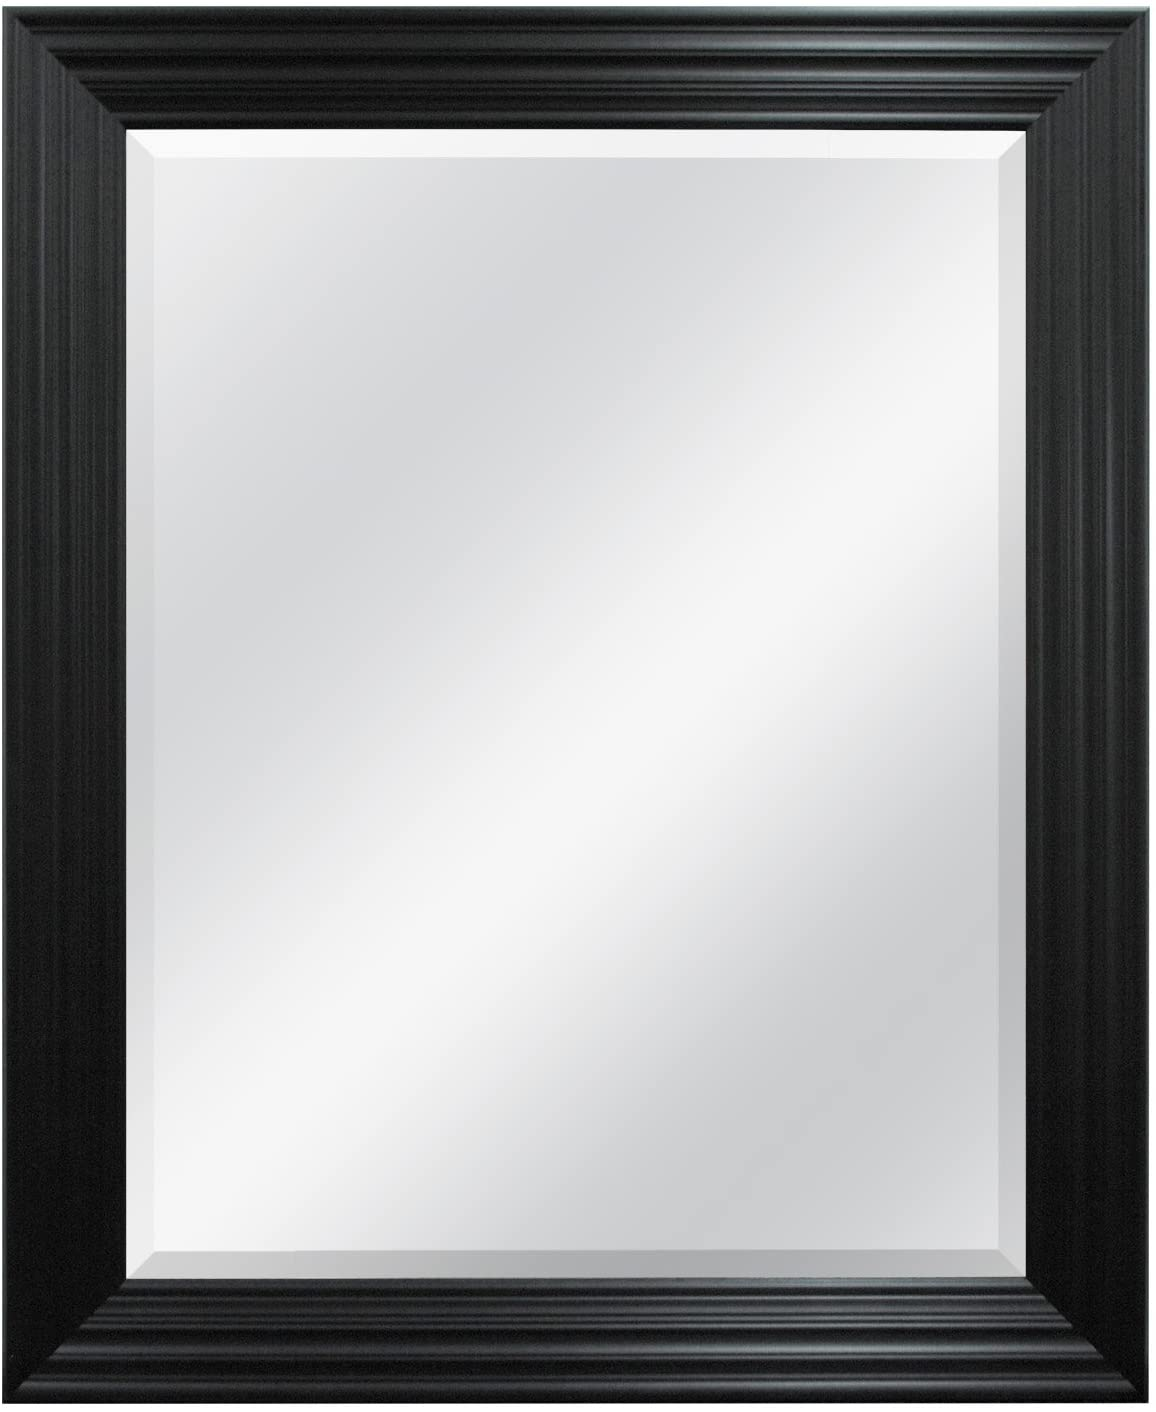 MCS Ridged Wall Mirror, 28 by 34-Inch, Brushed Black